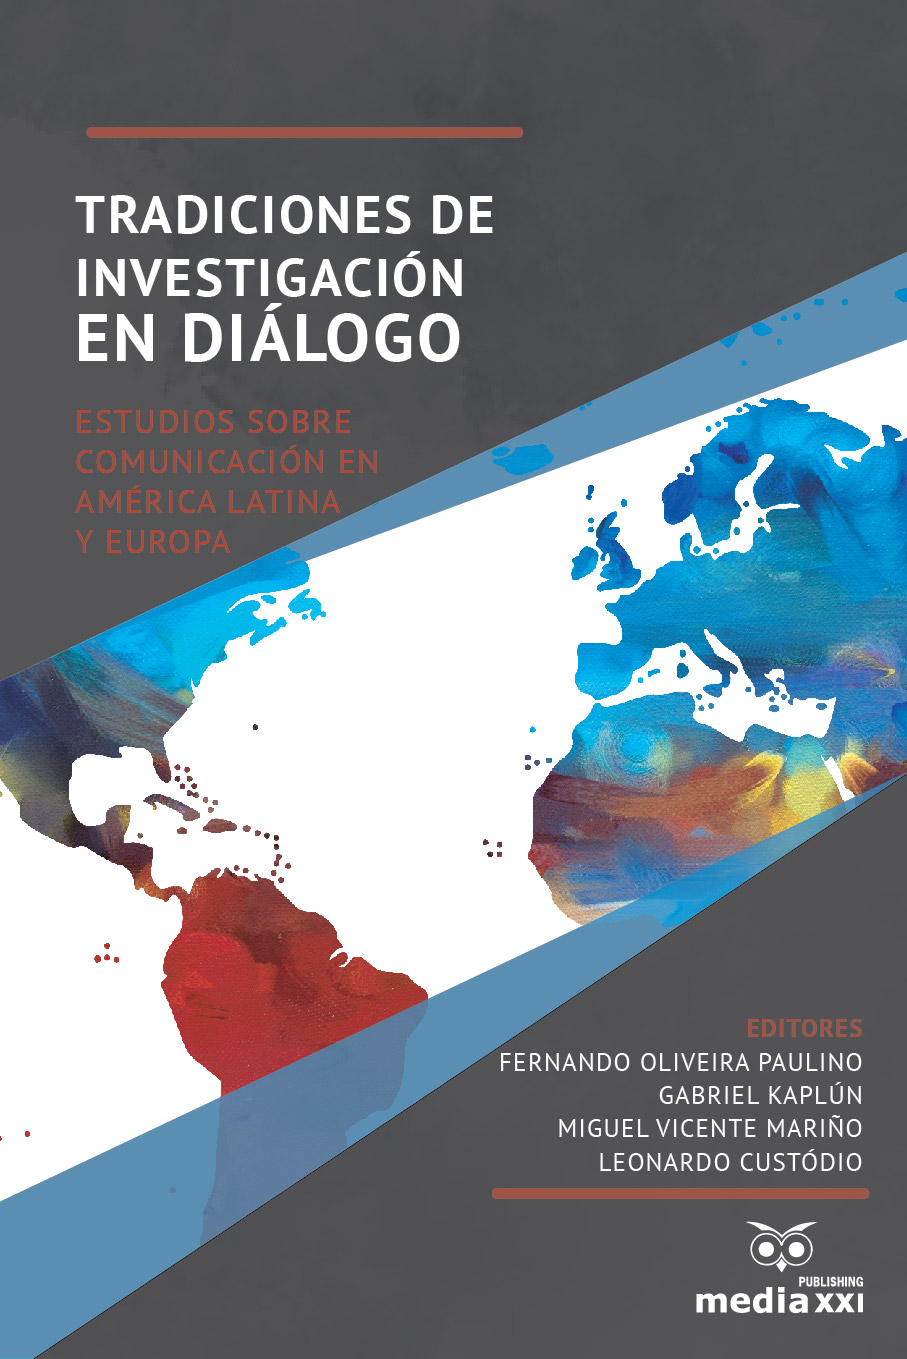 Research Traditions in Dialogue: Communication Studies in Latin America and Europe